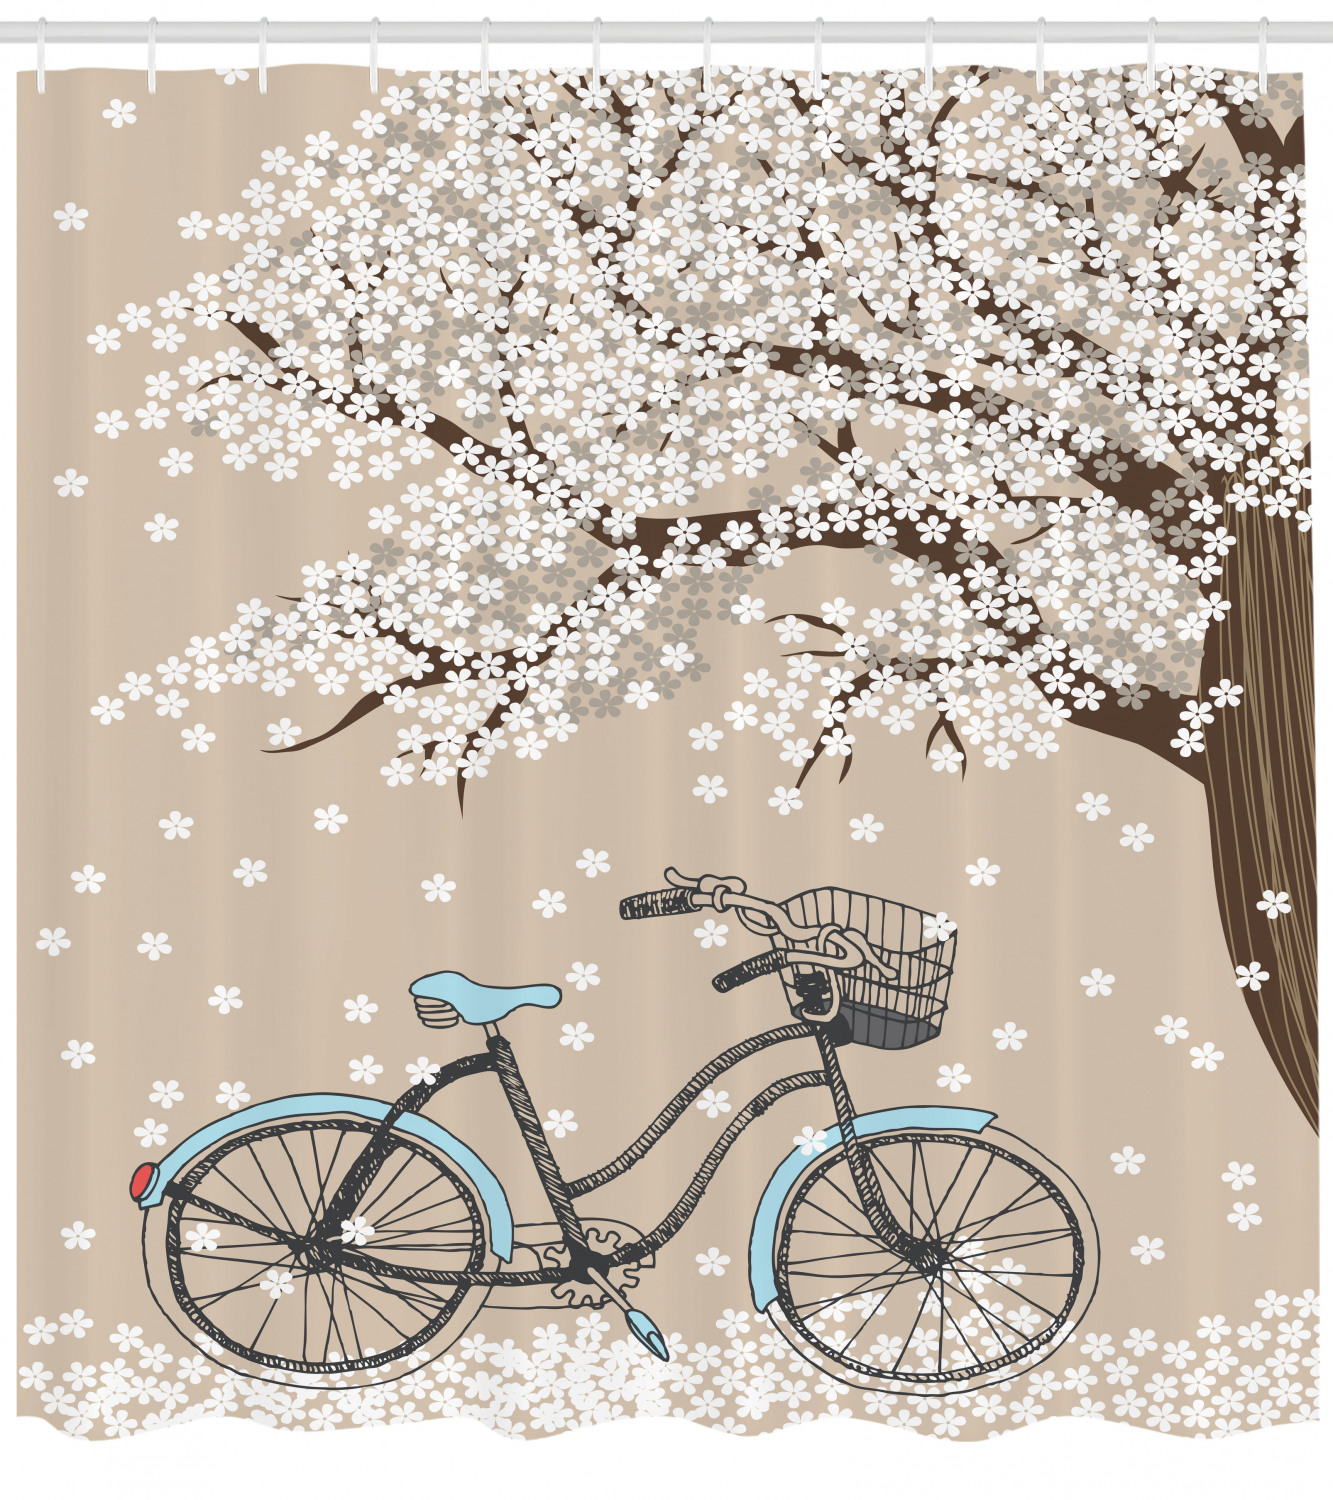 Bicycle Shower Curtain Blossoming Tree With Little White Flowers In The Spring And A Bike Sketch Artwork Fabric Bathroom Set With Hooks 69w X 70l